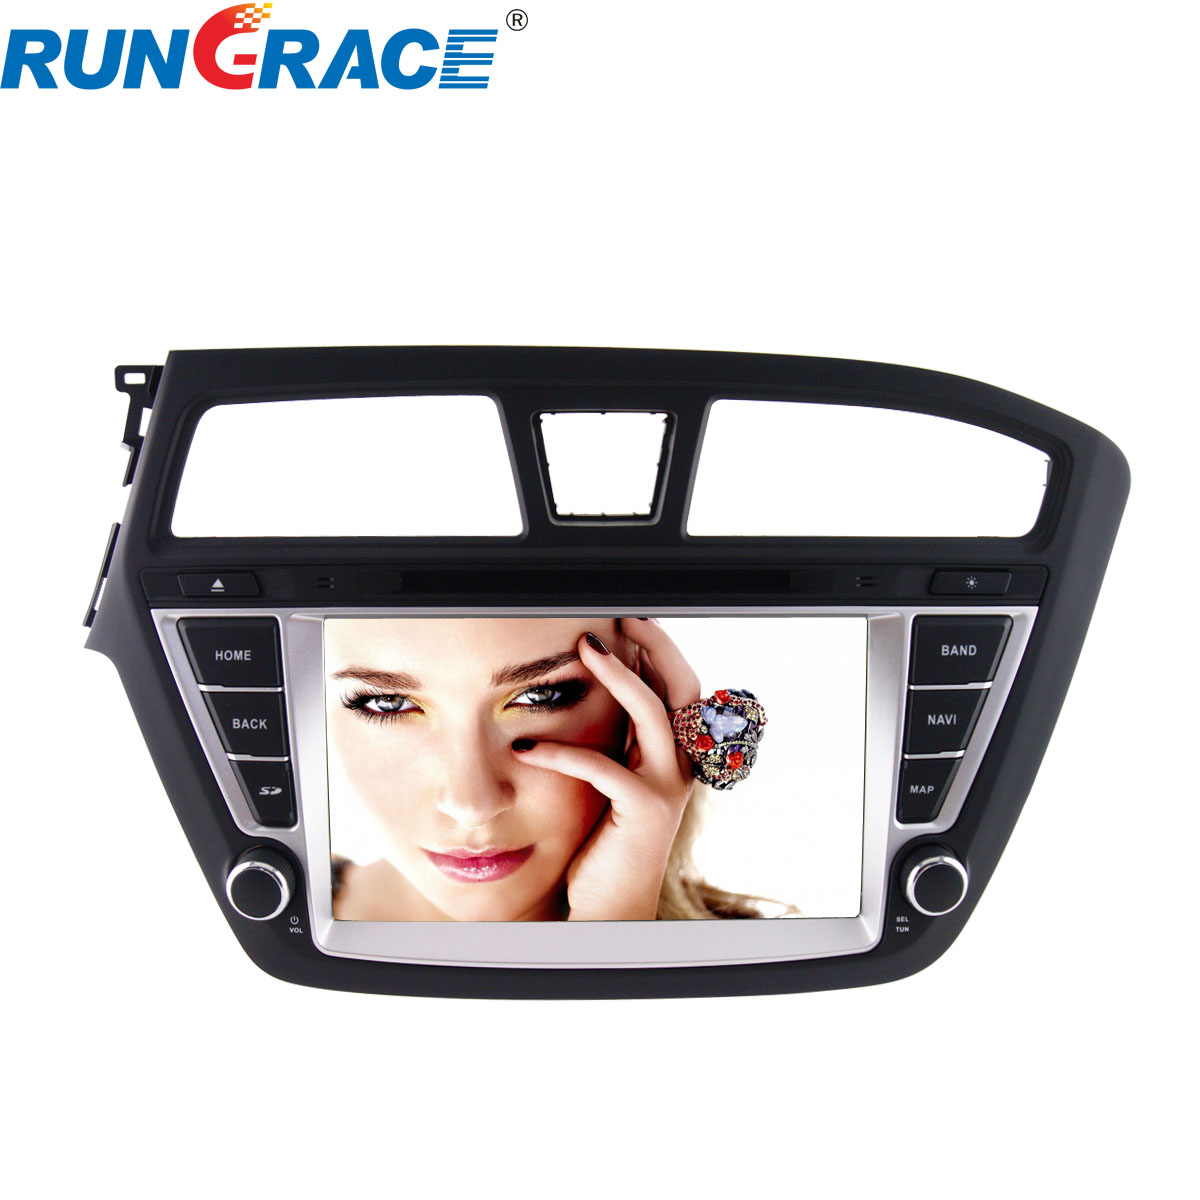 8 inch touch screen android gps car dvd player for Hyundai i20